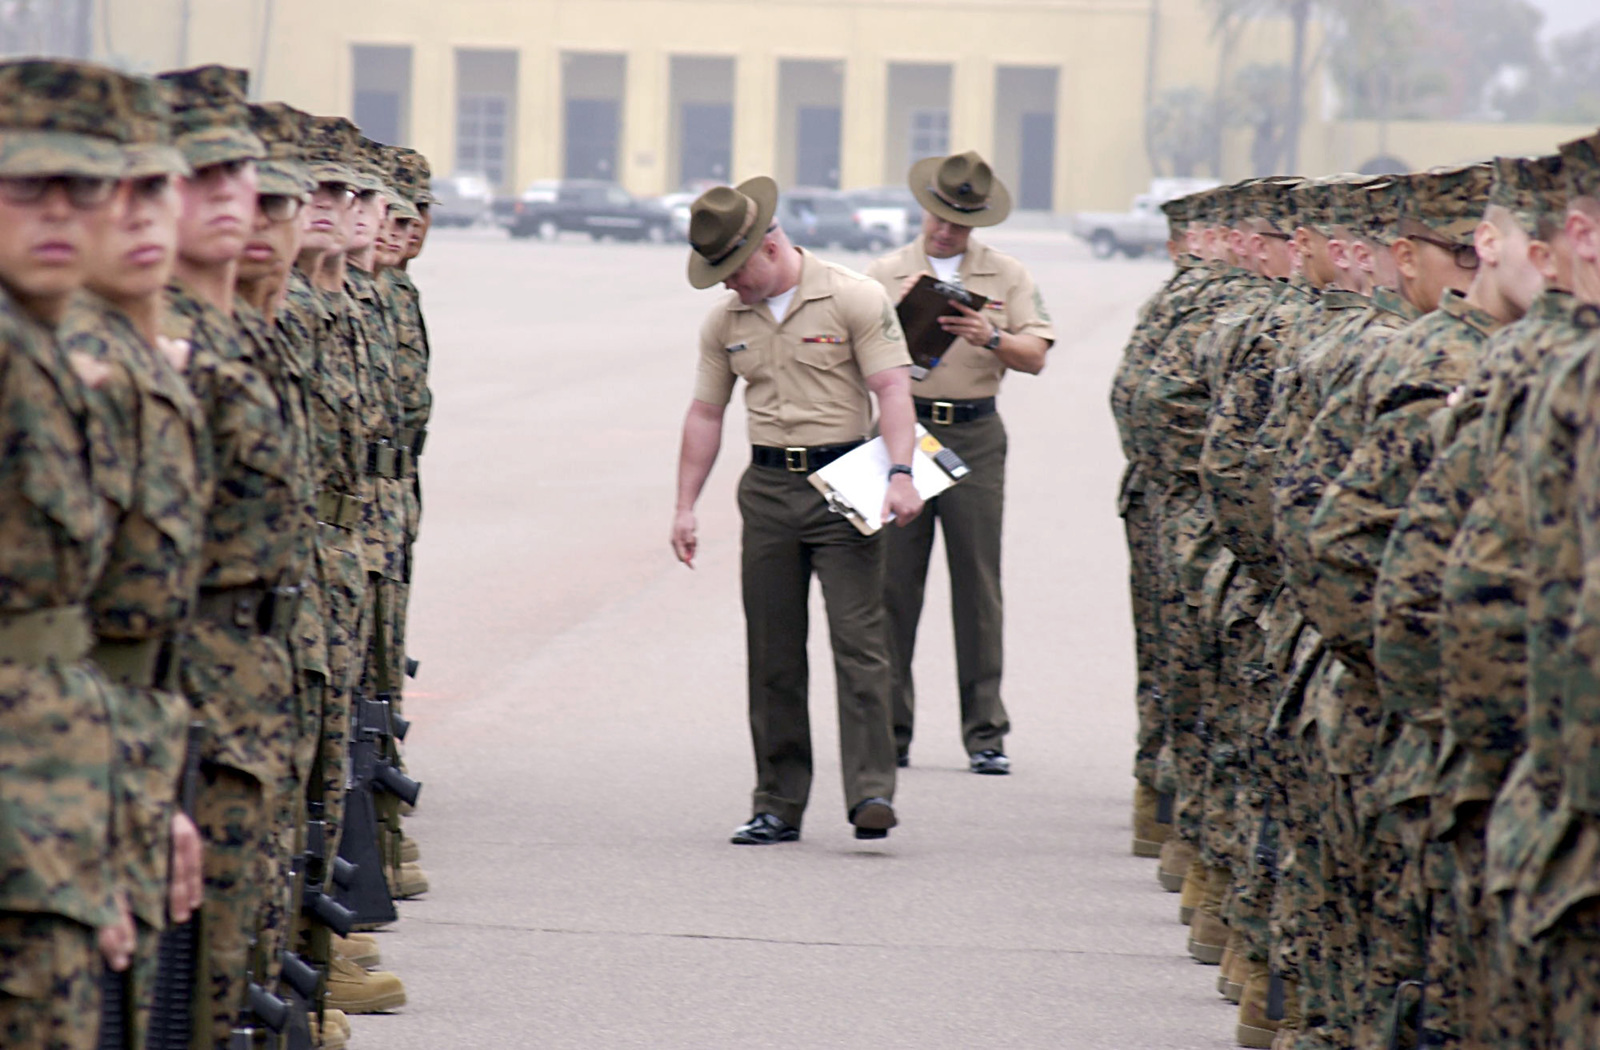 US Marine Corps (USMC) Drill Masters aboard Marine Corps Recruit Depot (MCRD) San Diego, California (CA), grades recruits from Lima/Company during their final drills